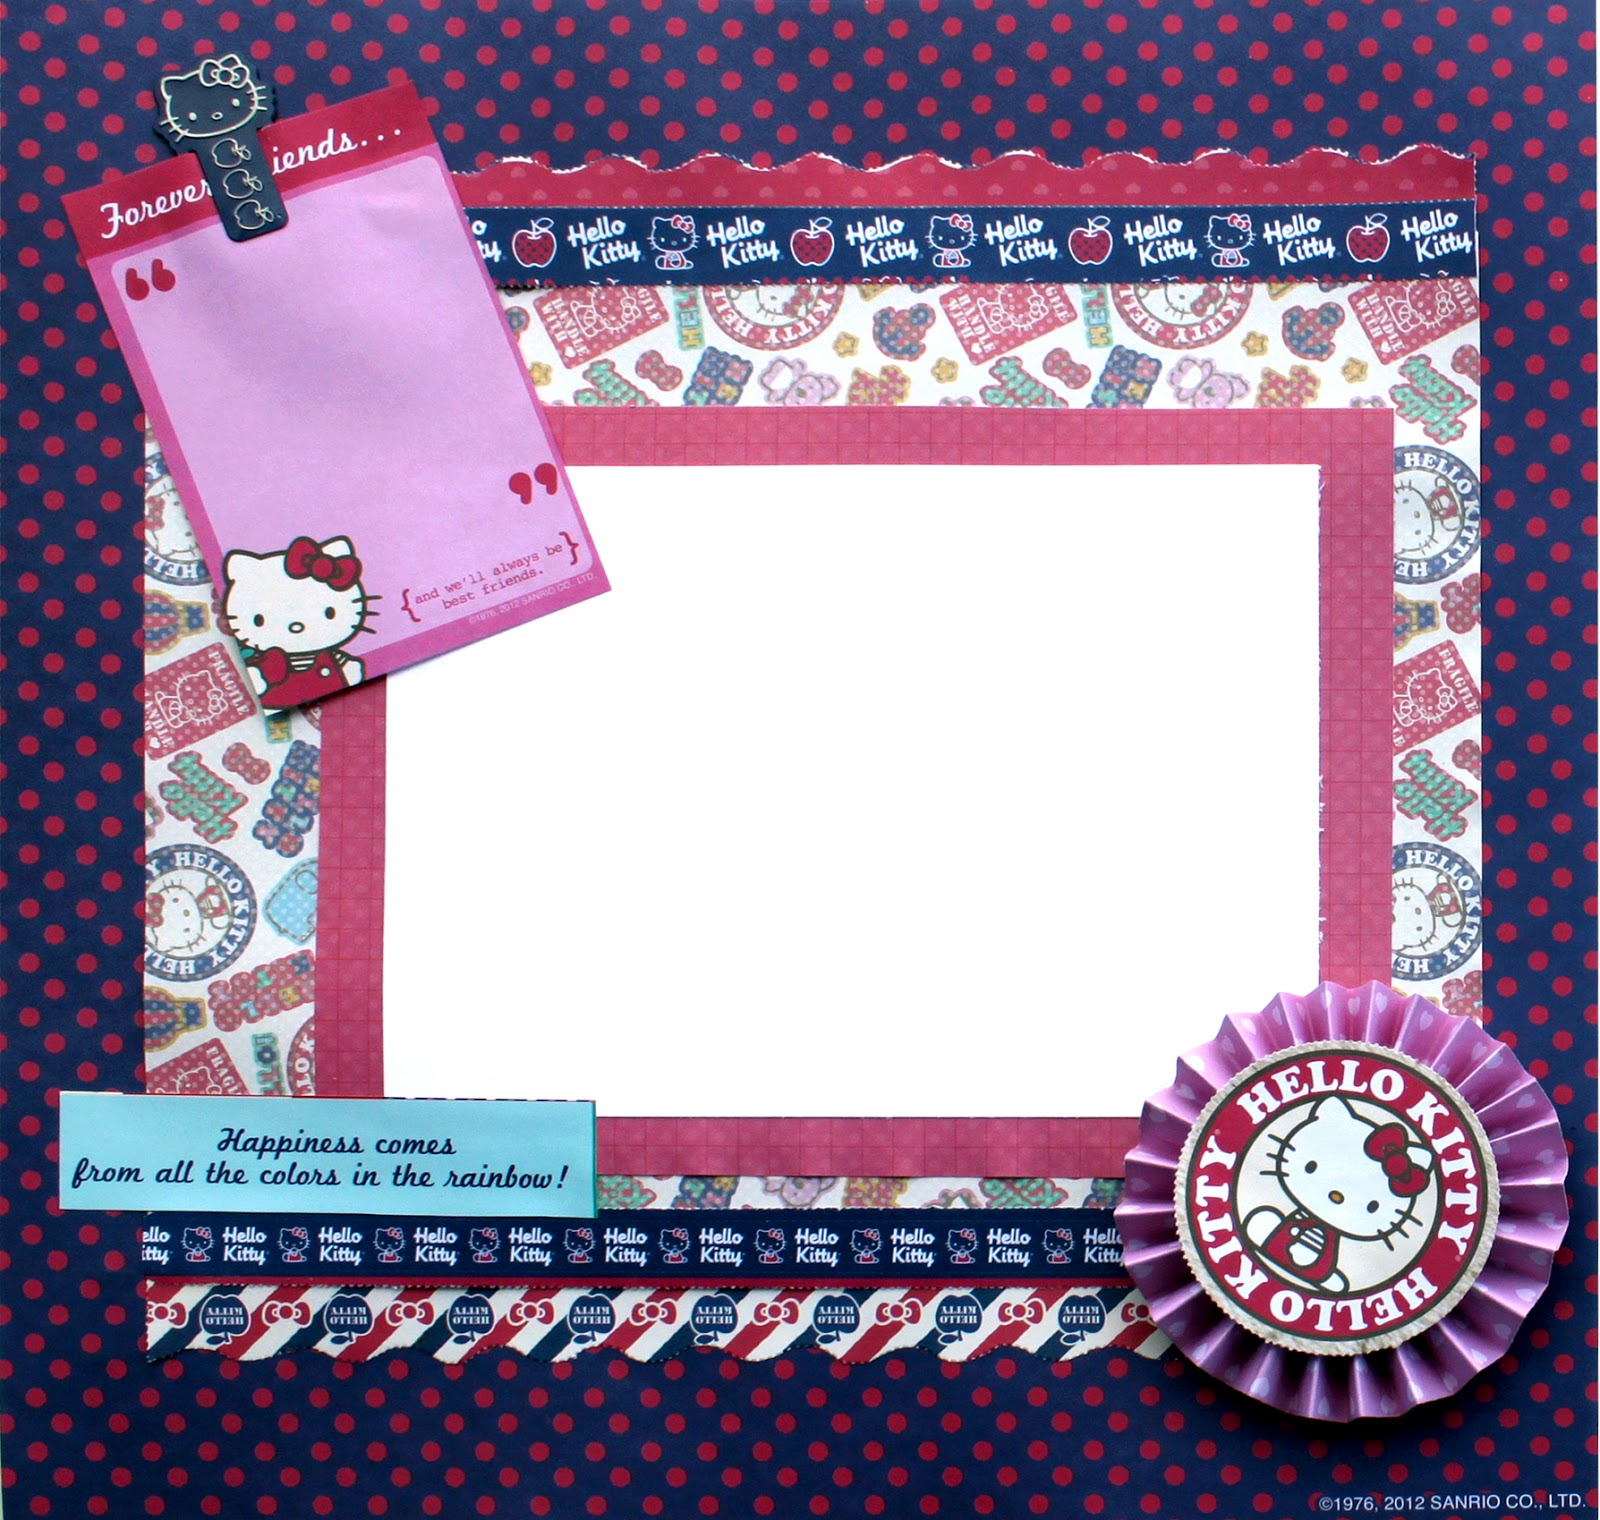 Hello kitty scrapbook ideas - With A Great Selection Of Coordinating Patterned Papers And Embellishments You Can Create Pages Cards Gift Bags And Tags Picks Memo Clips